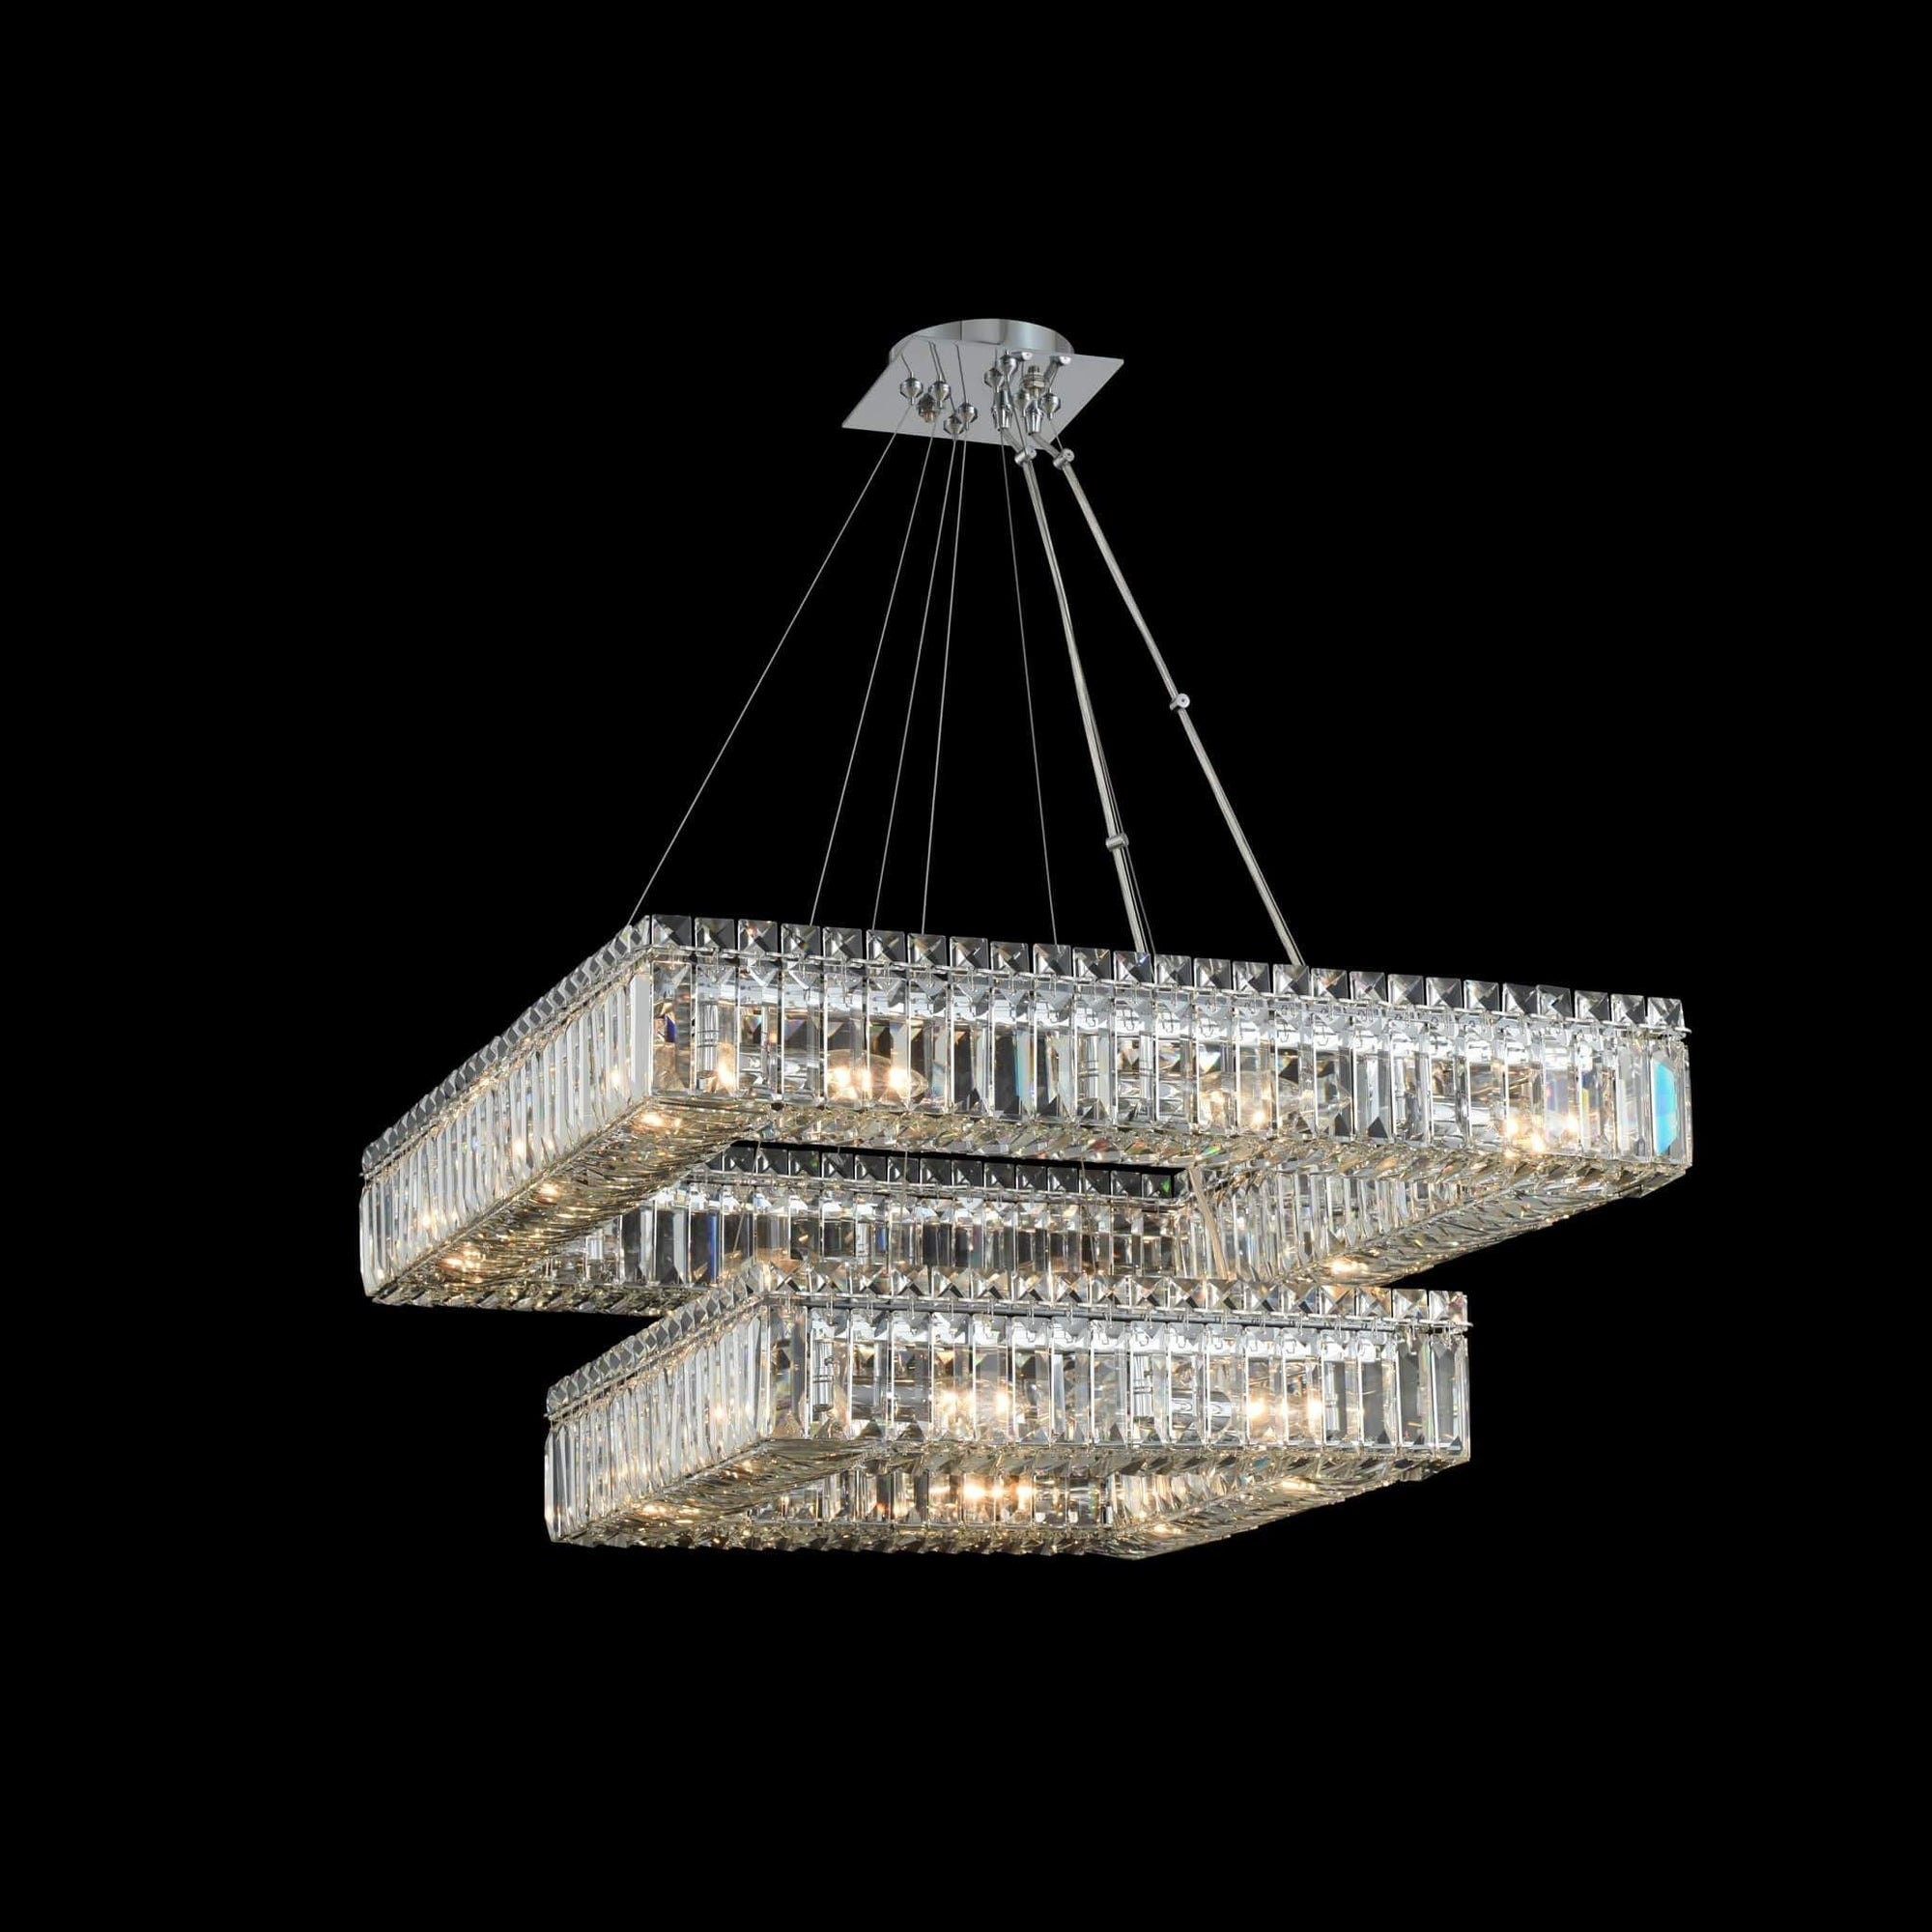 Allegri by Kalco Lighting Pendants Chrome / Firenze Quadro (18 + 27) Inch 2 Tier Pendant From Allegri by Kalco Lighting 11782